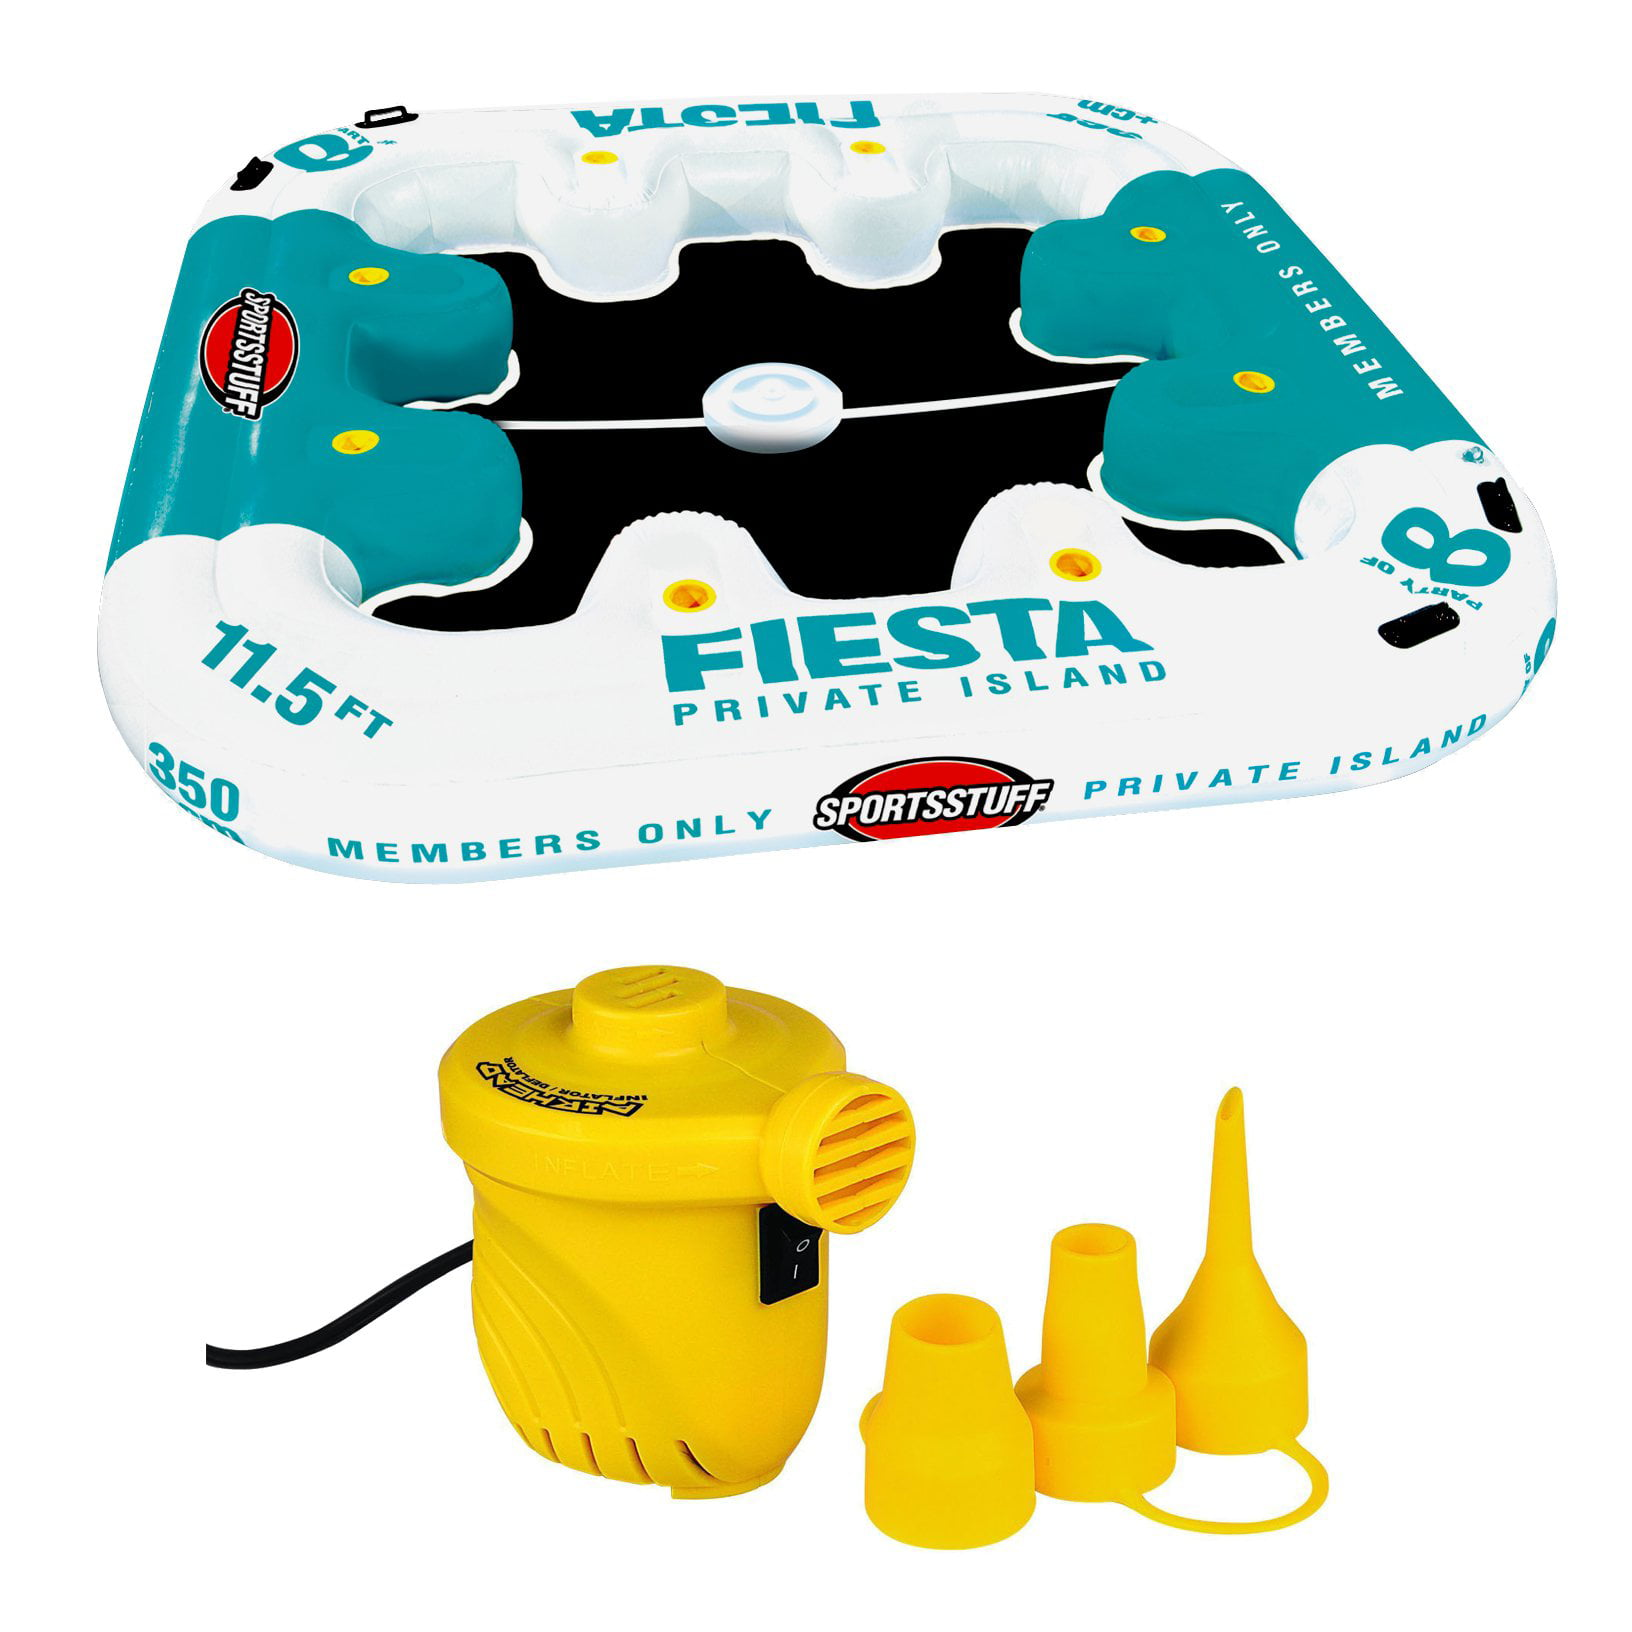 Sportsstuff Fiesta Island 8-Person Raft with Cooler +12V Portable Air Pump by Kwik Tek